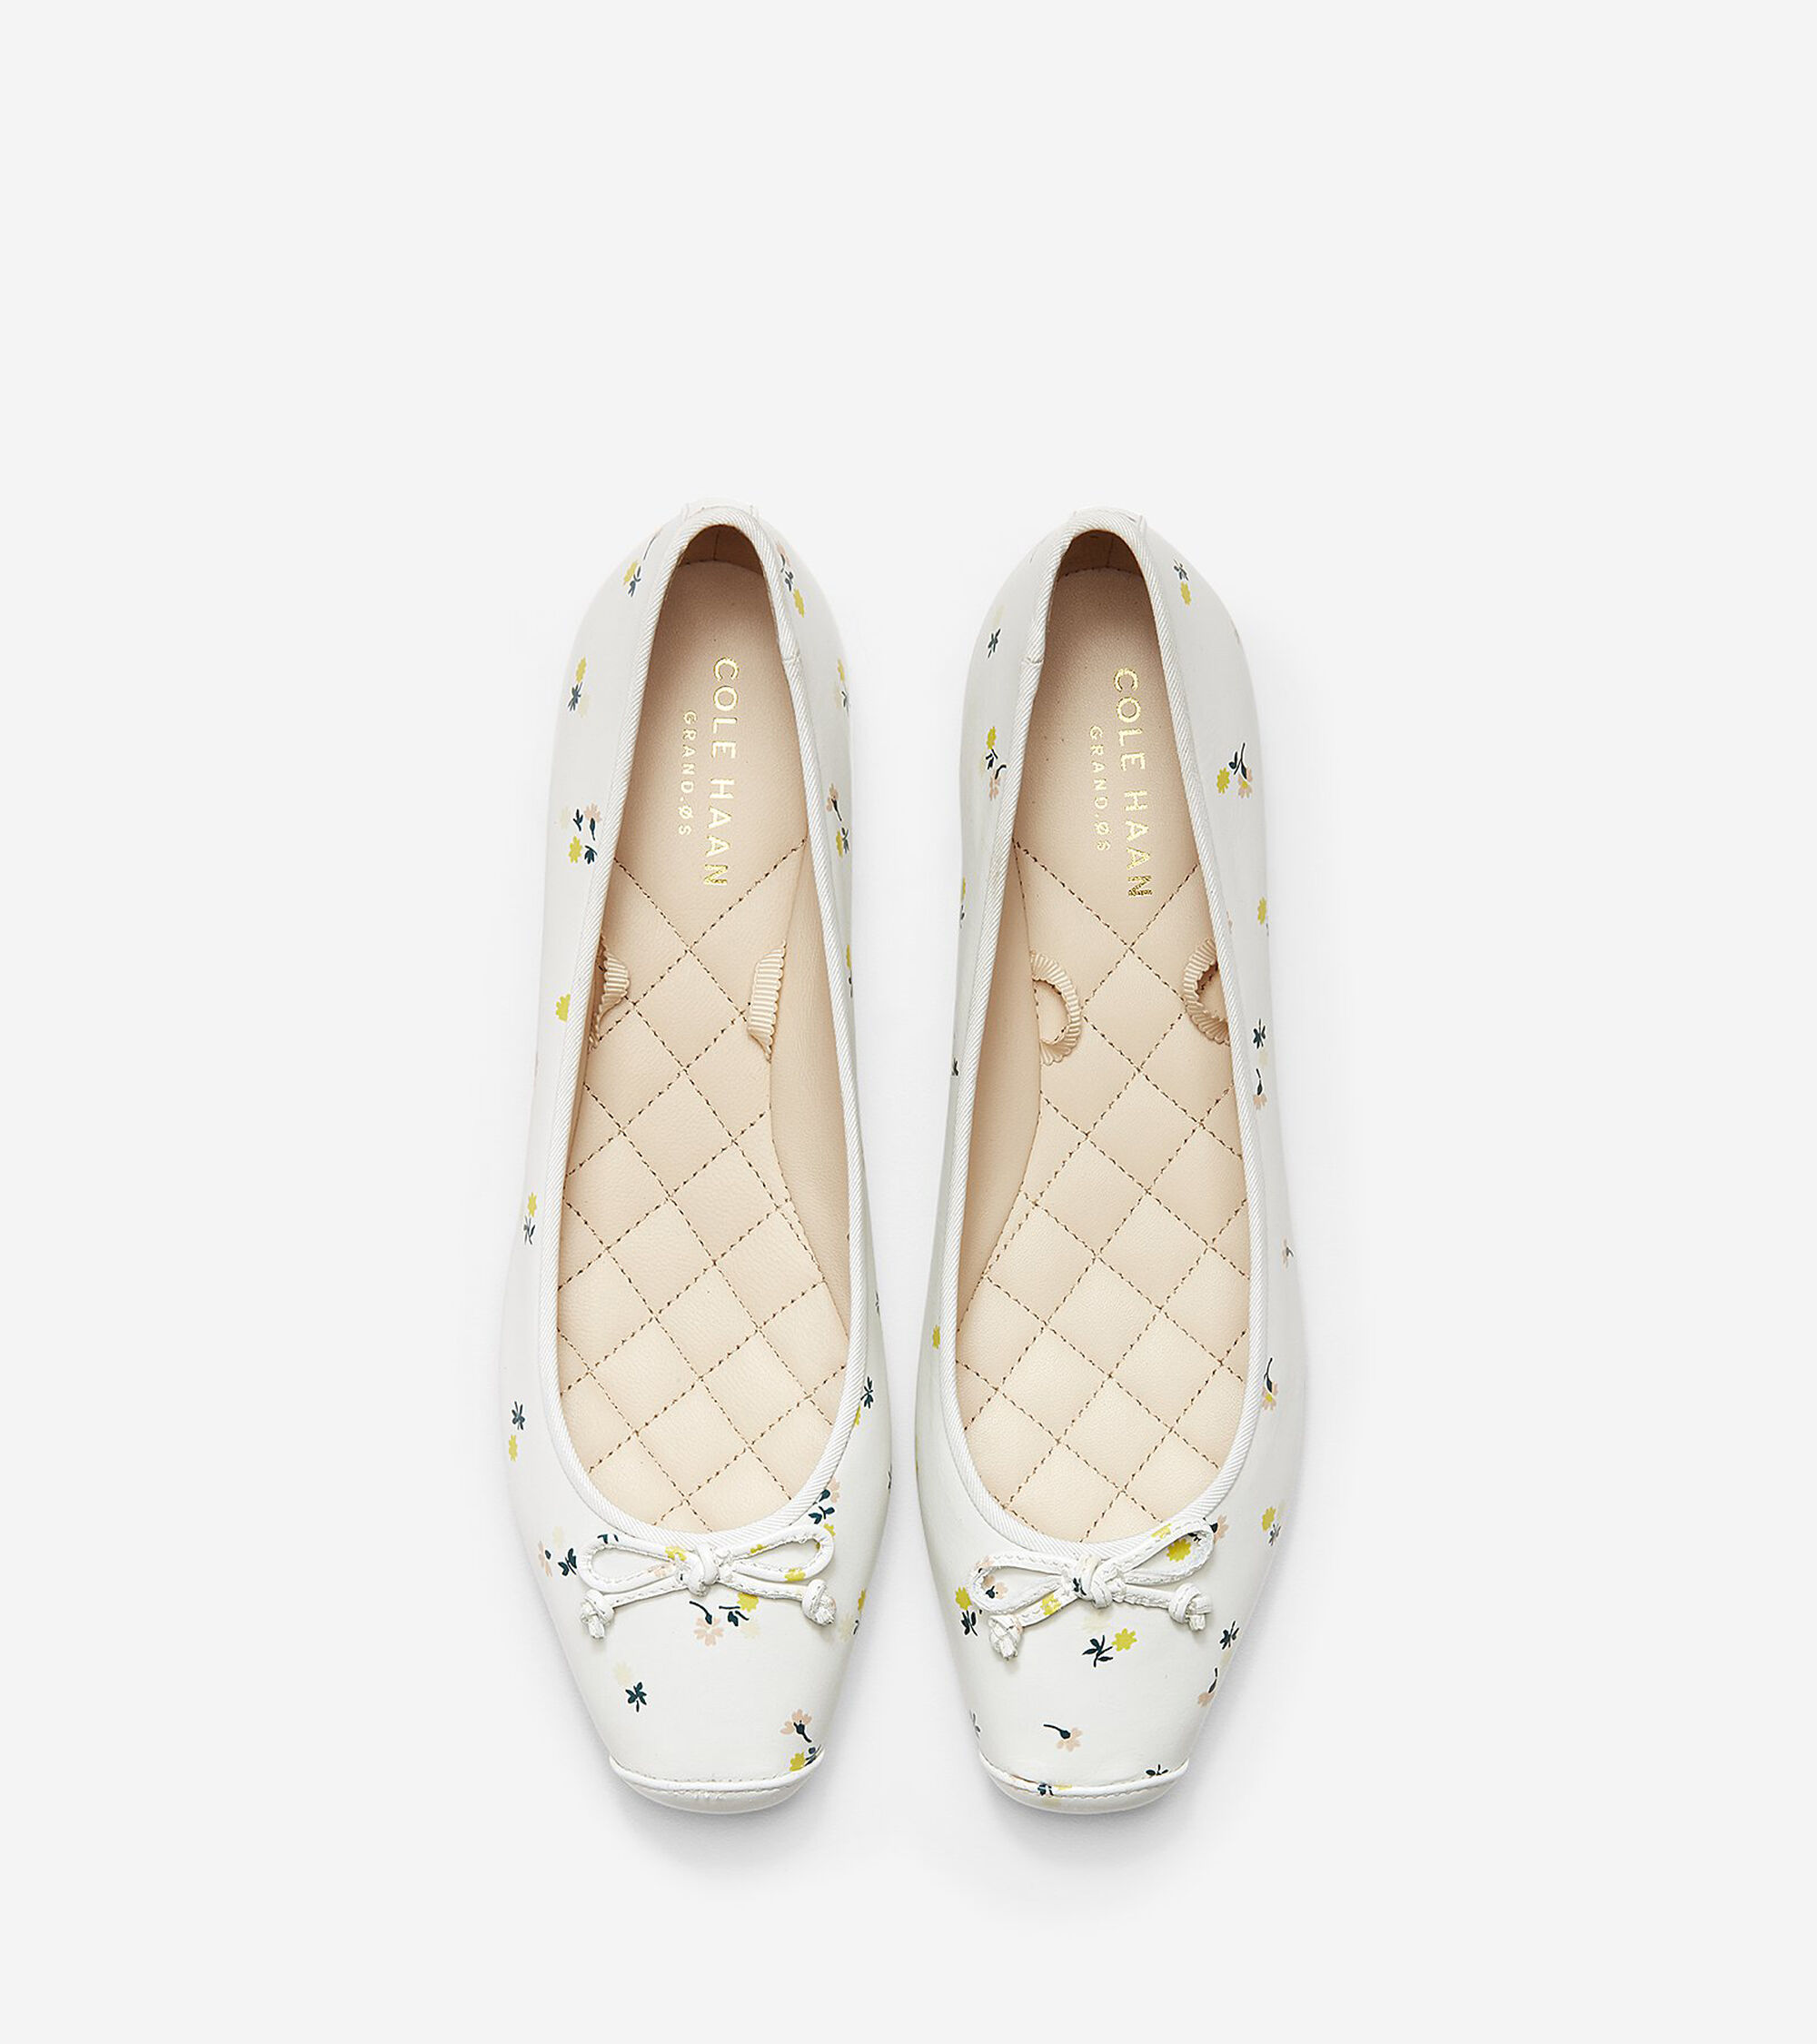 ed60aa0a9ff Women s Downtown Ballet Flats in White Floral Print